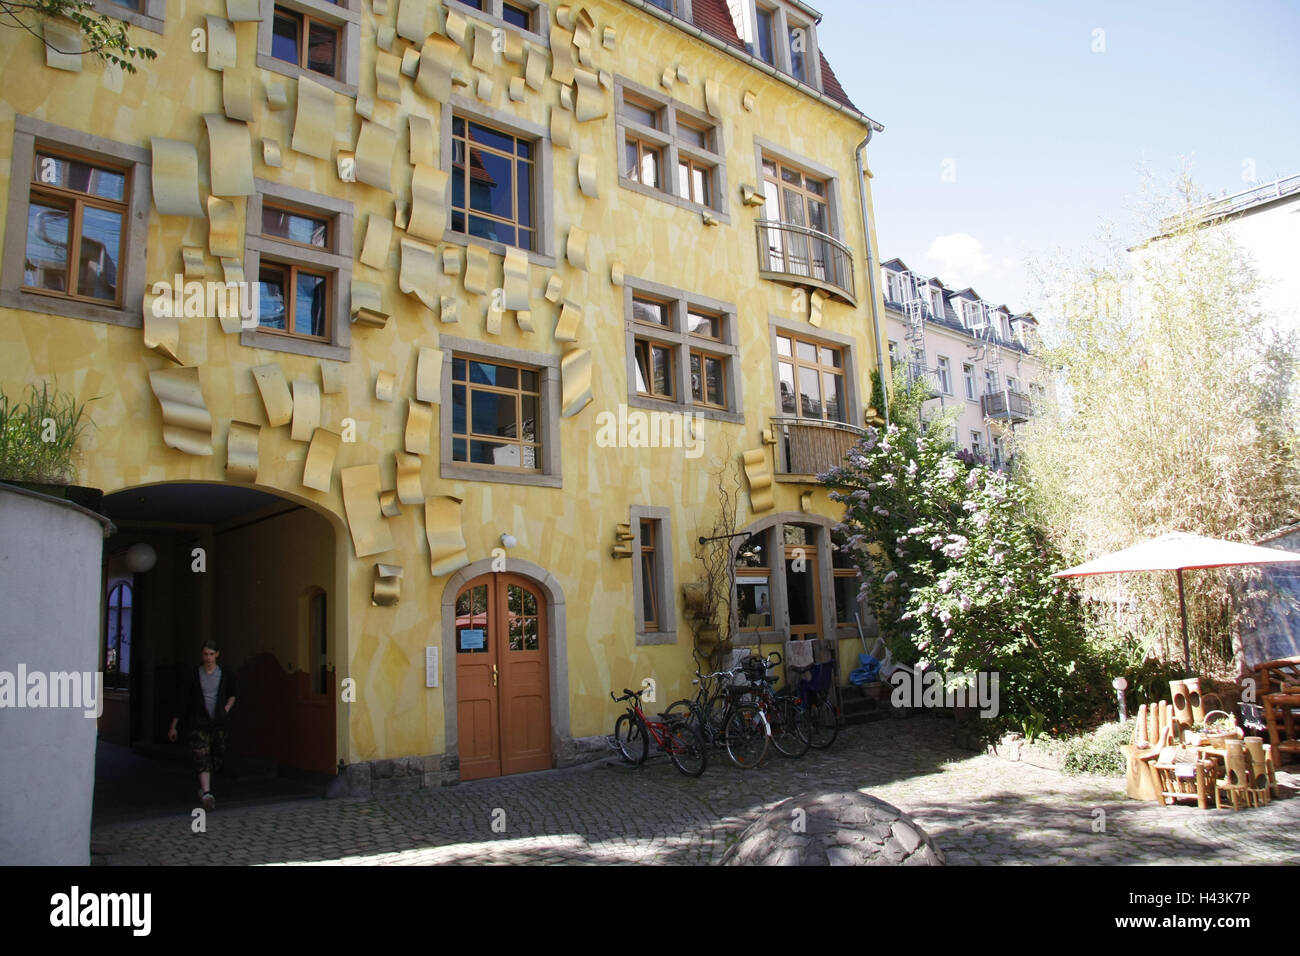 Court Of The Elements Stockfotos & Court Of The Elements Bilder - Alamy